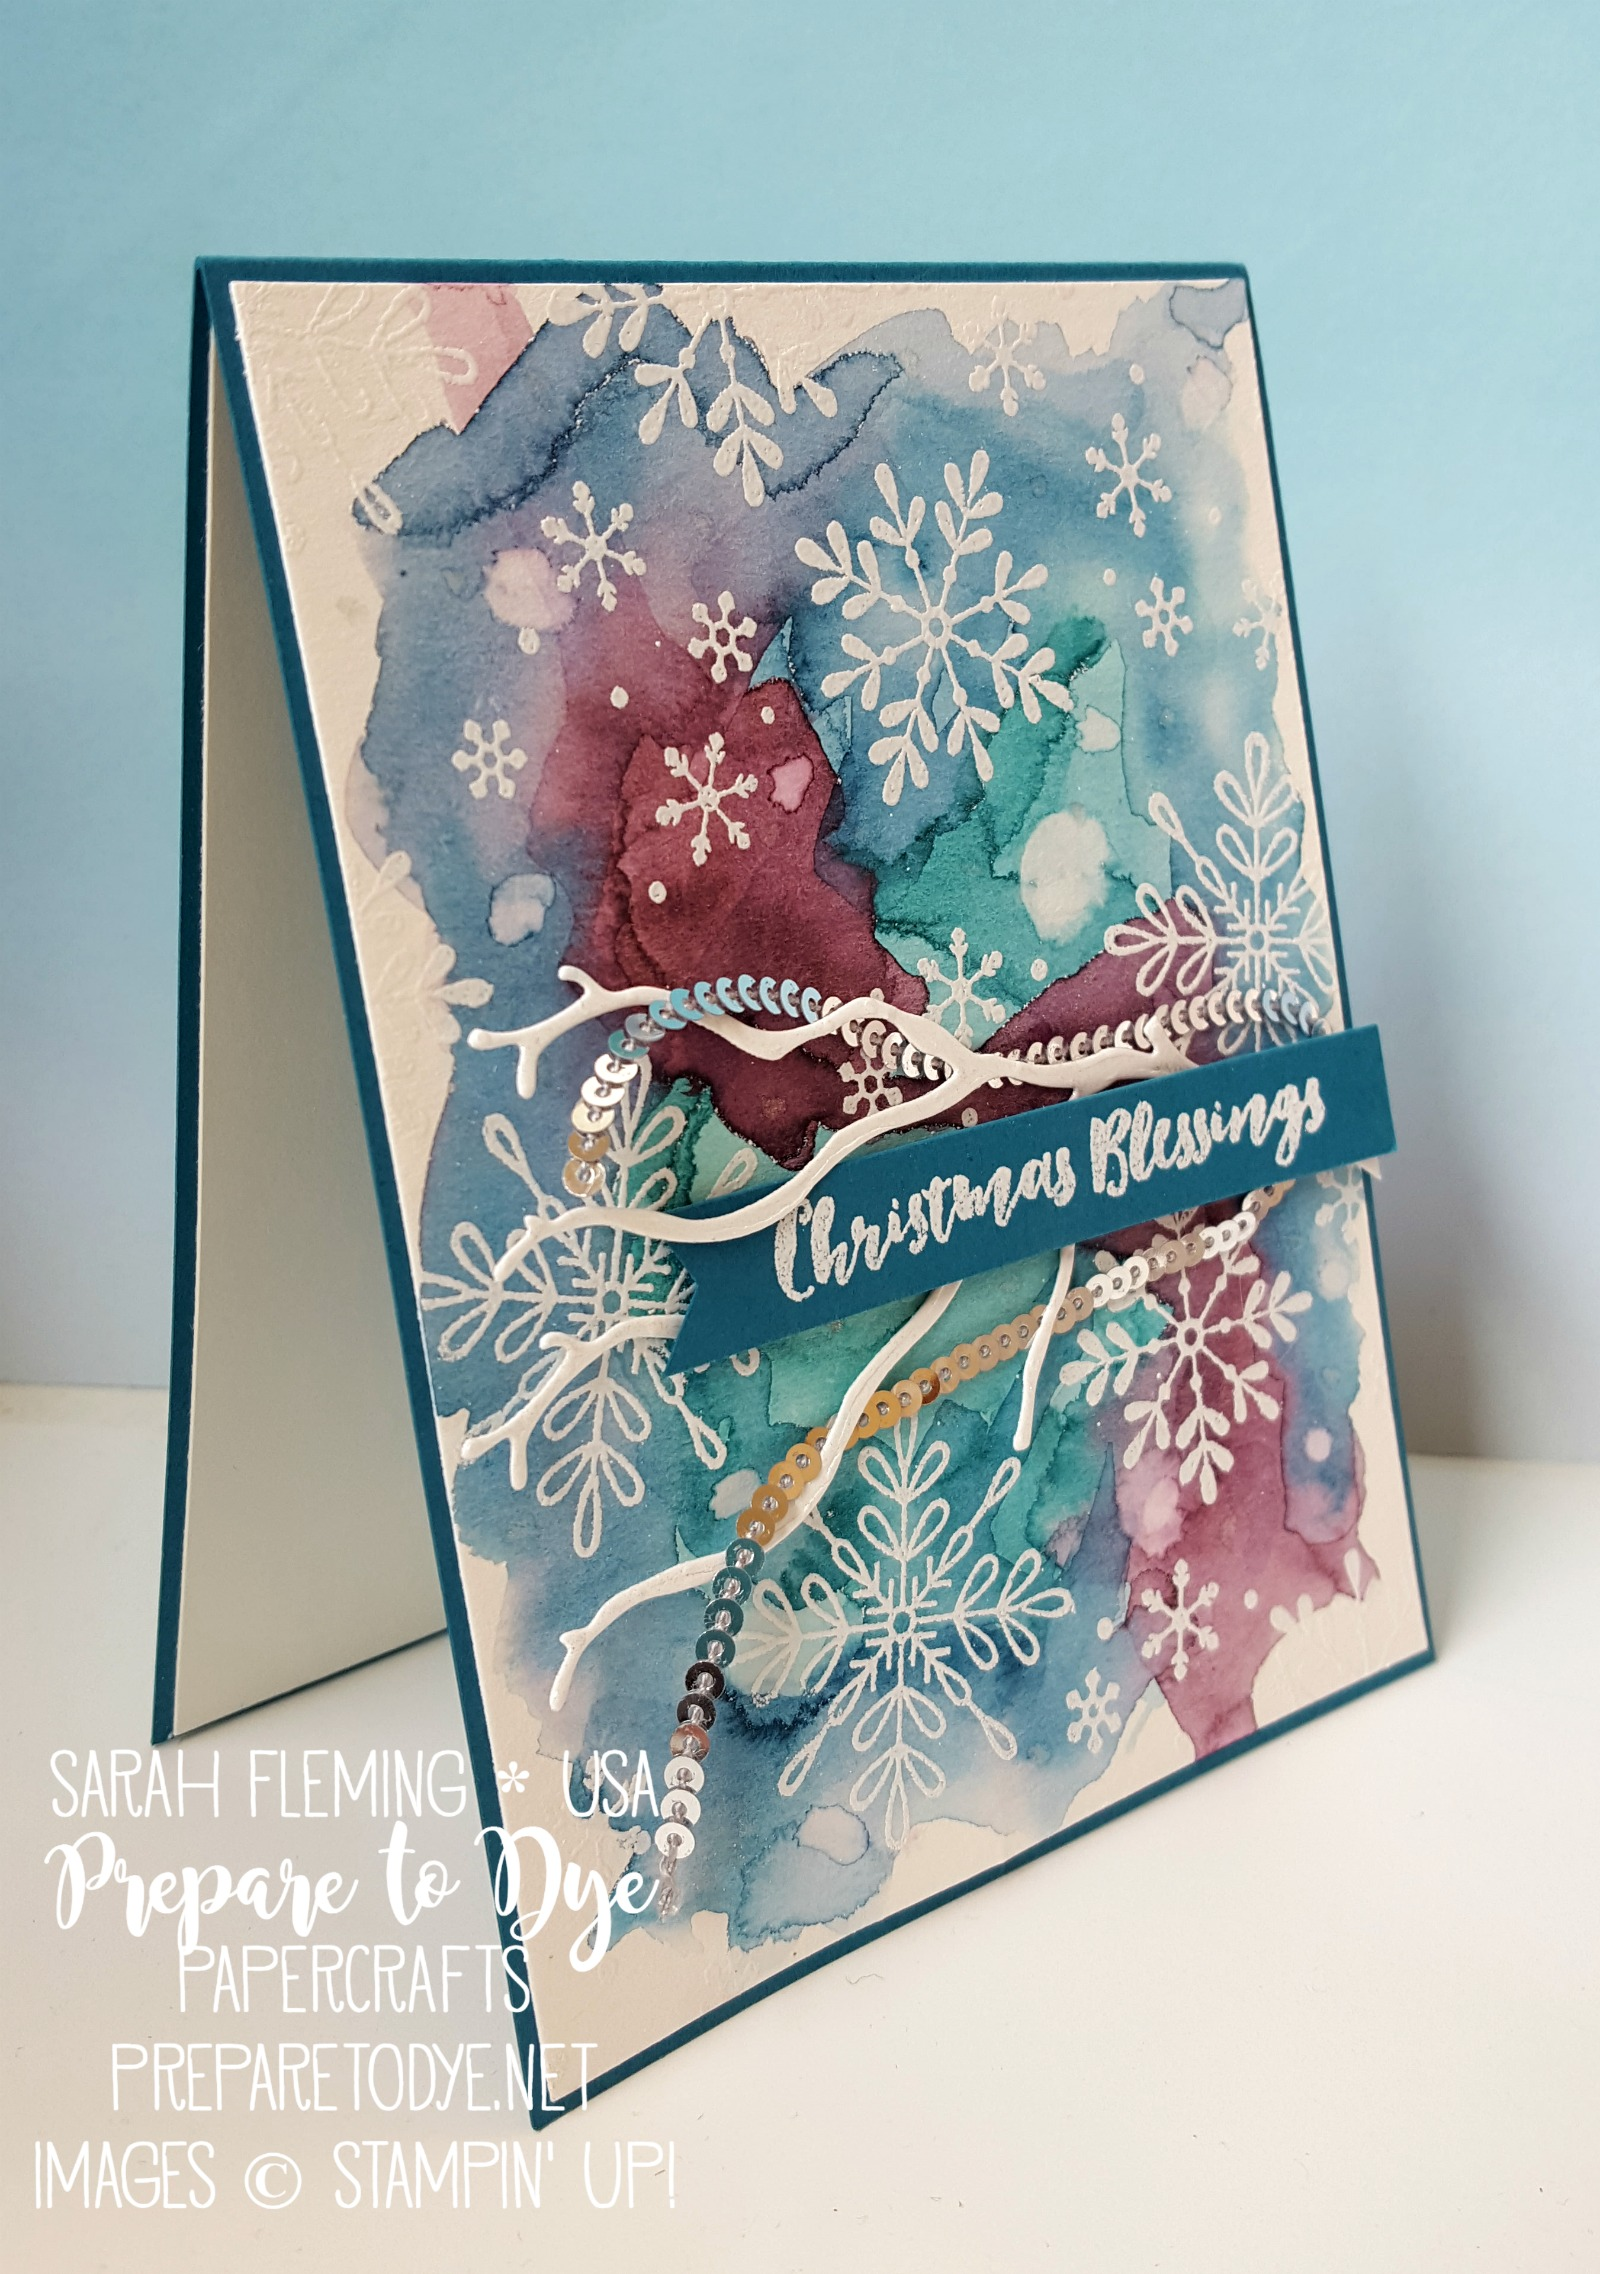 Stampin' Up! handmade Christmas card with watercolor background, Tags & Trimmings, Christmas Pines, Snowflake Sentiments, and Seasonal Layers thinlits - Sarah Fleming - Prepare to Dye Papercrafts